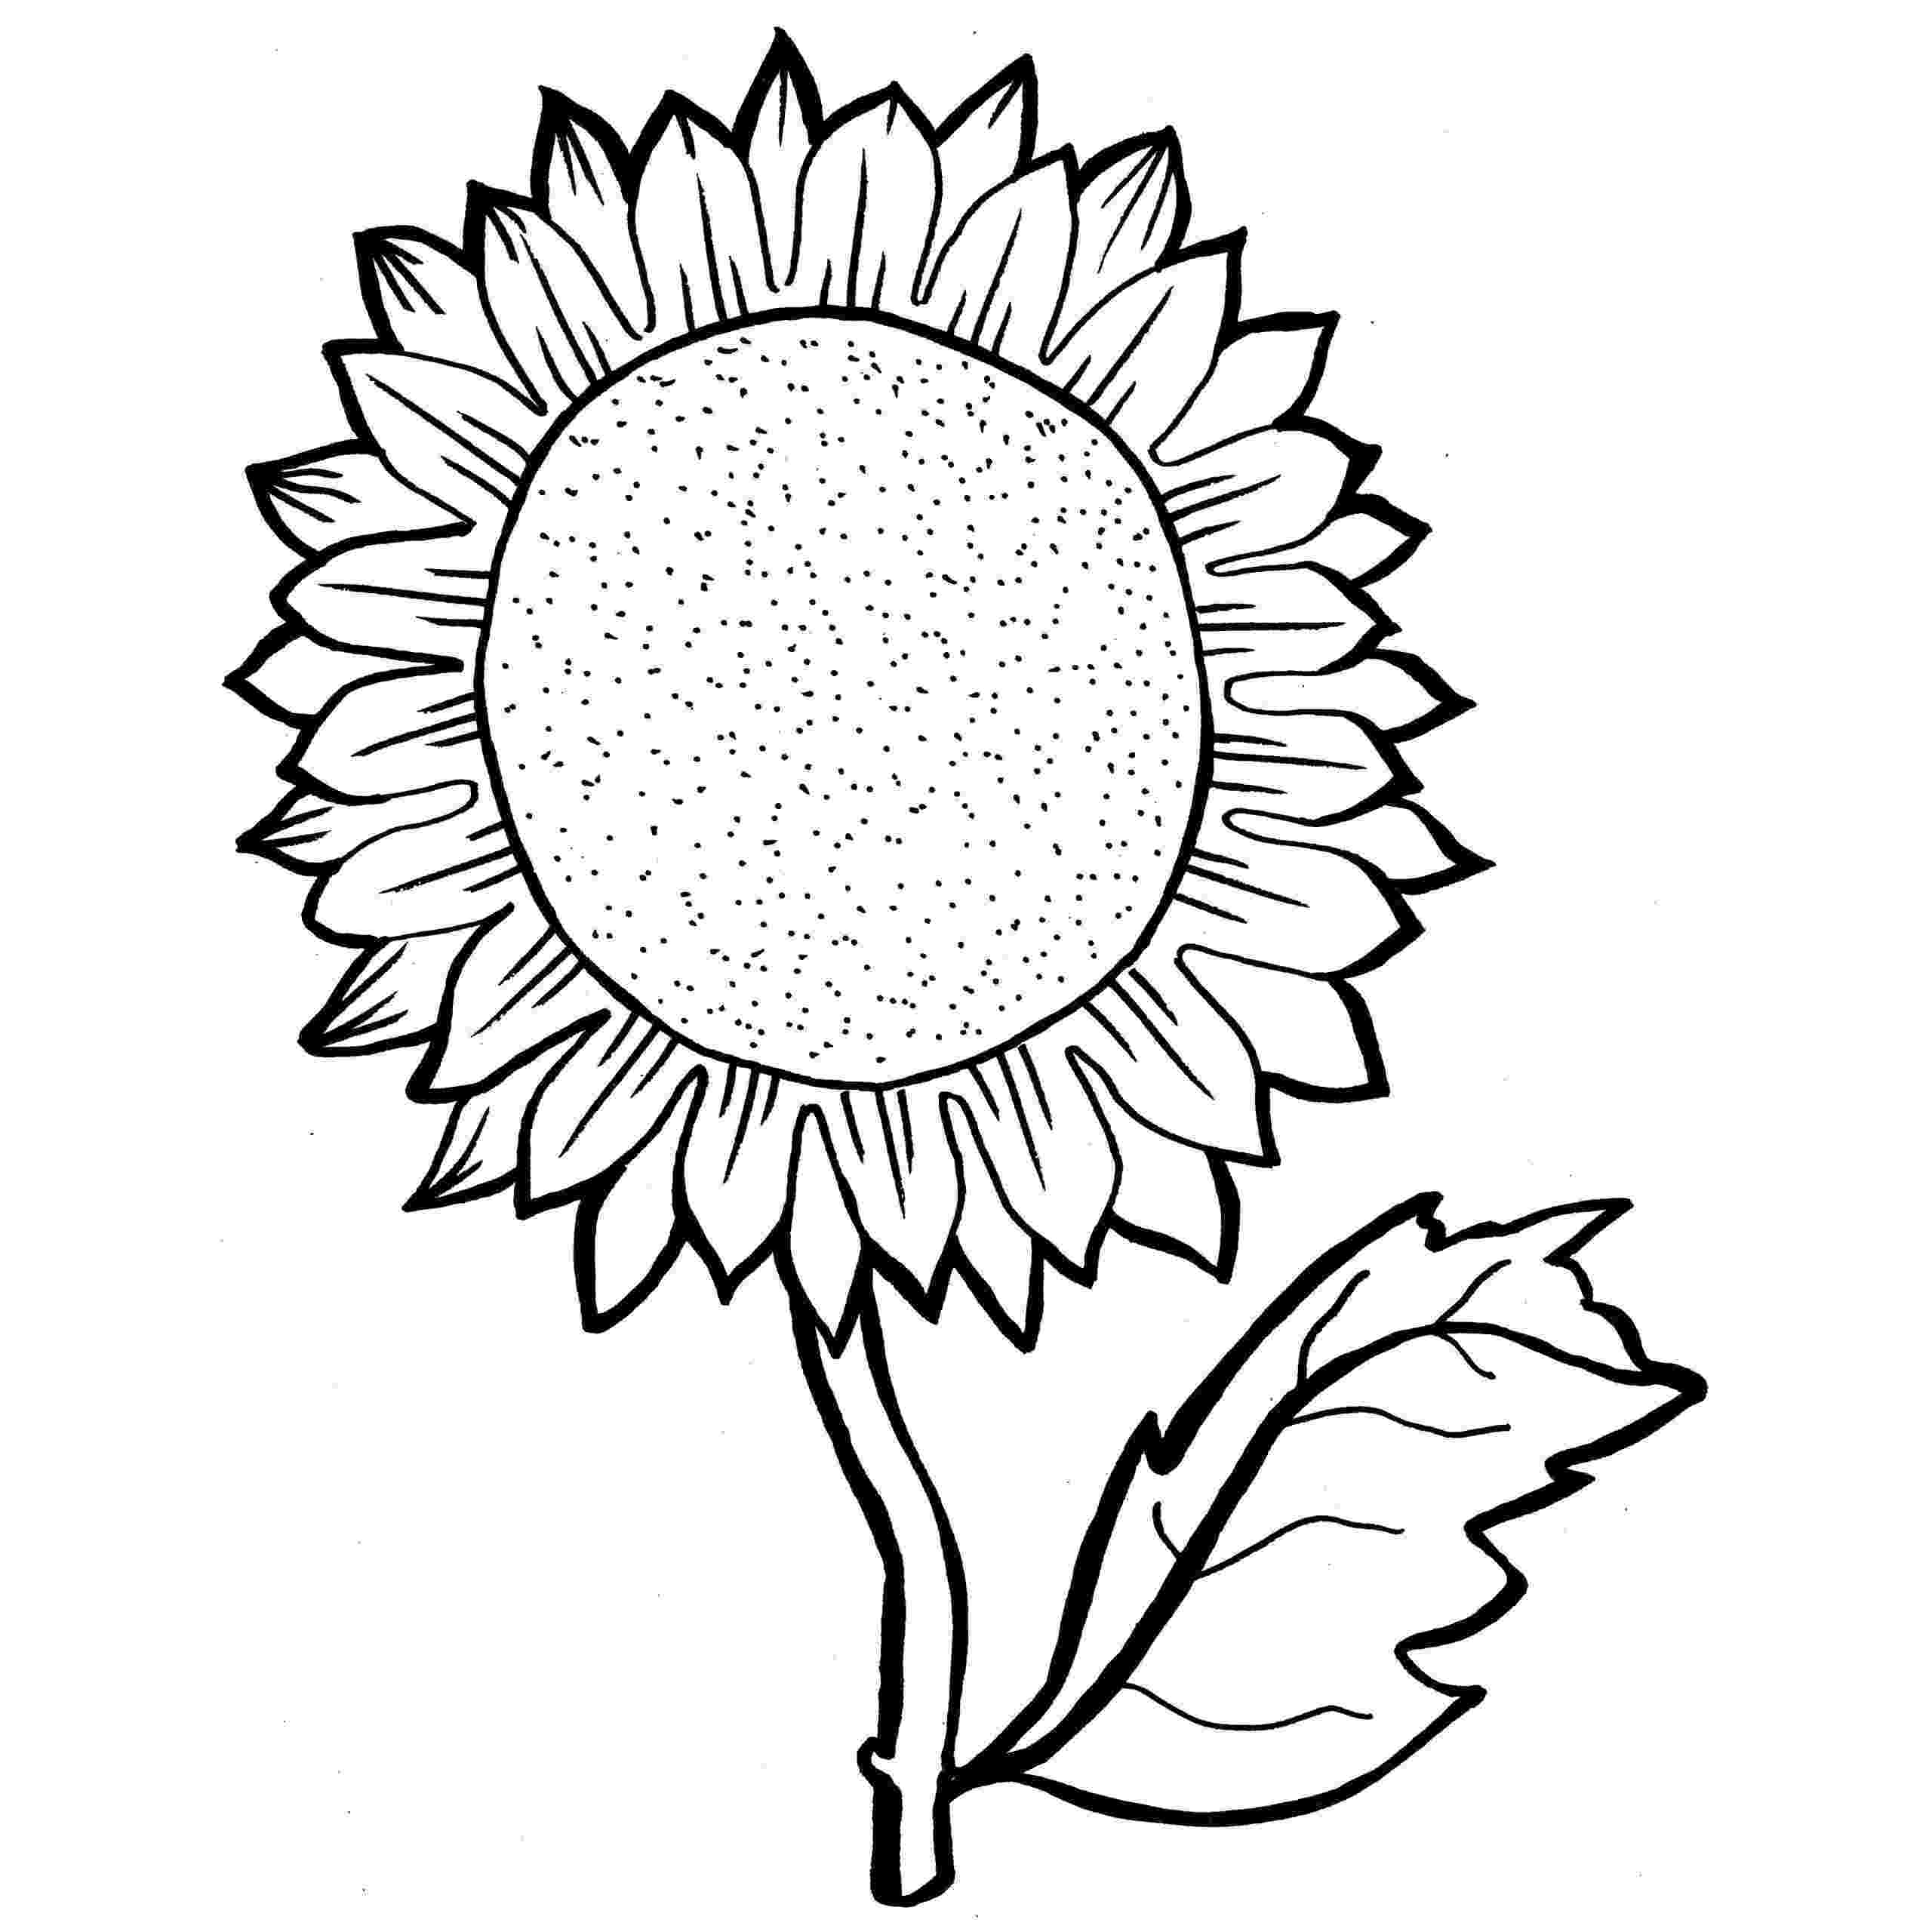 sunflower to color free coloring pages printable sunflower coloring pages to color sunflower